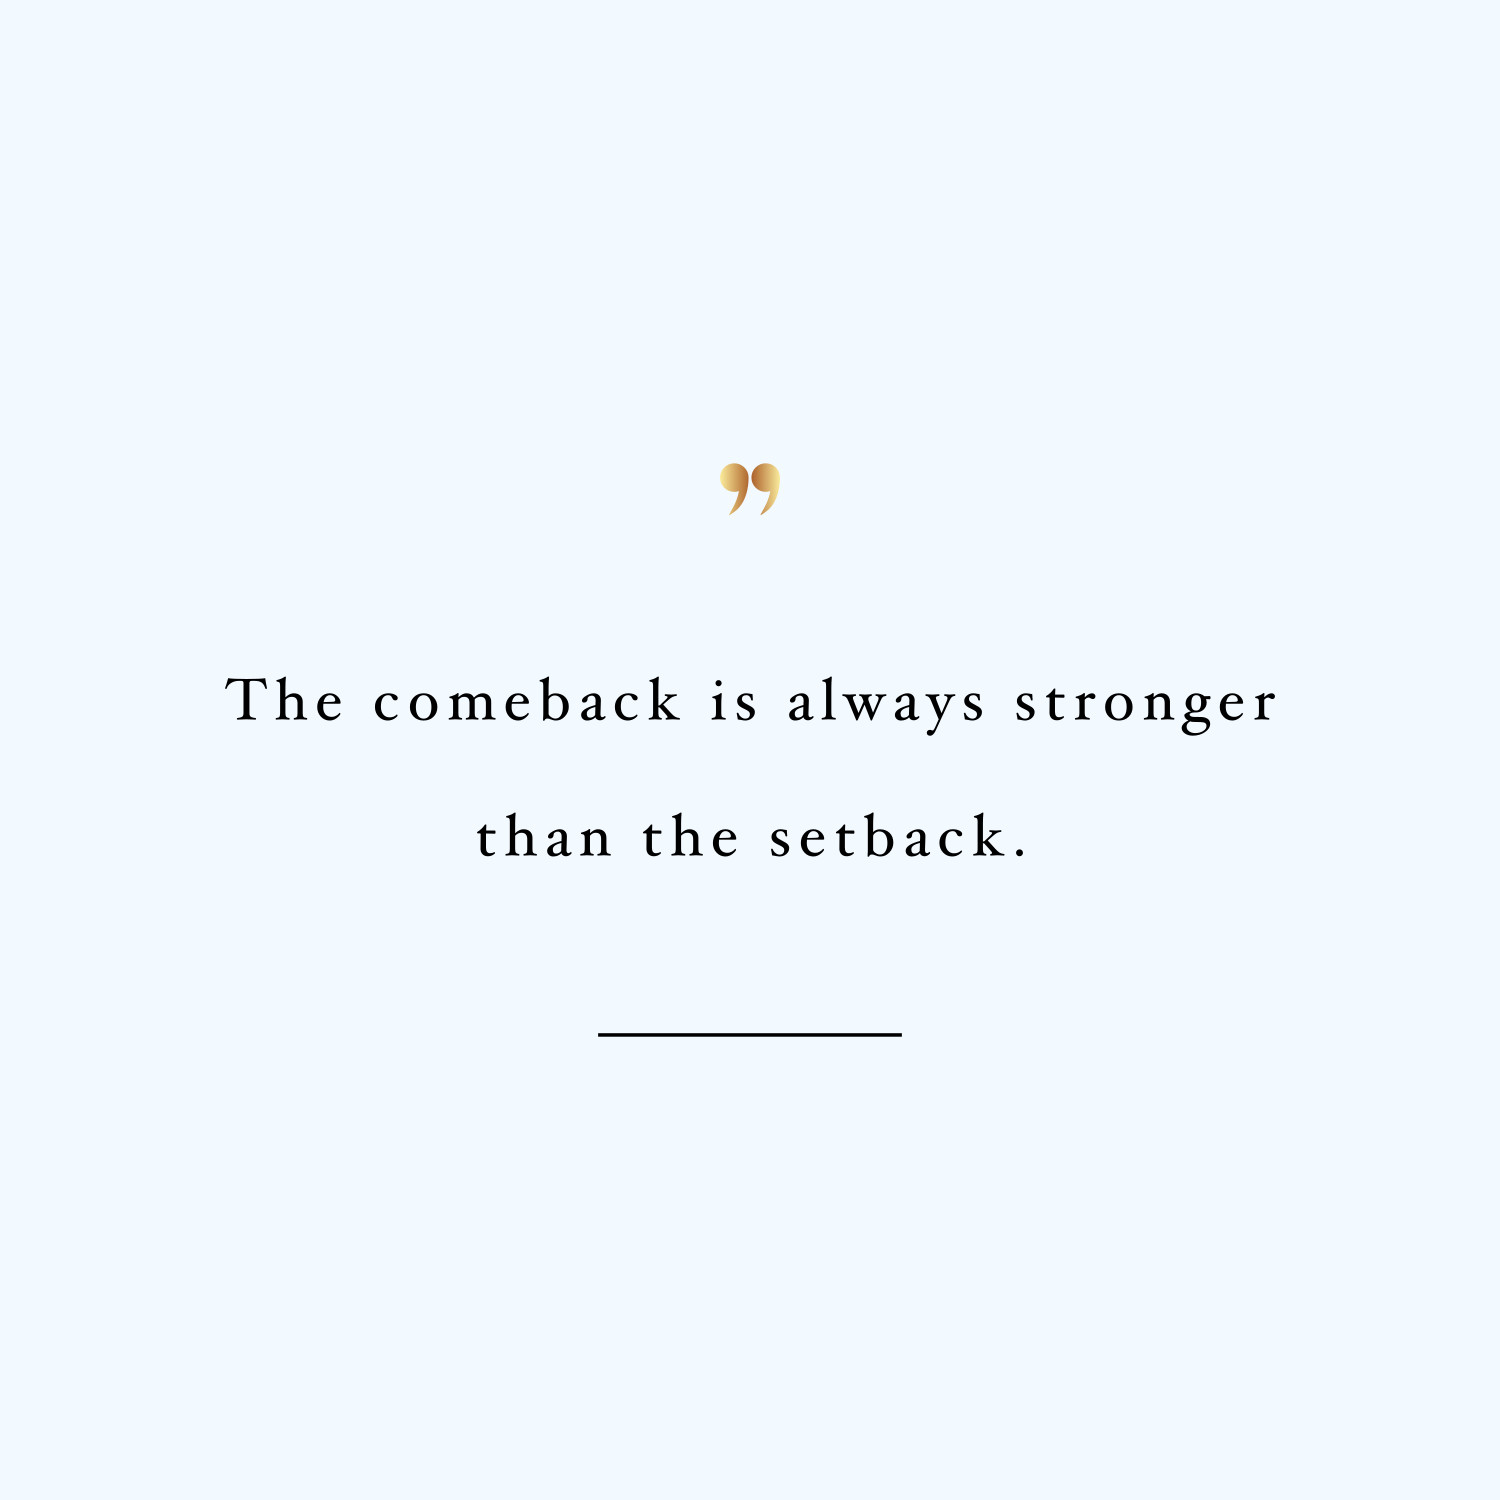 The comeback! Browse our collection of motivational exercise and healthy eating quotes and get instant weight loss and fitness inspiration. Stay focused and get fit, healthy and happy! https://www.spotebi.com/workout-motivation/the-comeback/